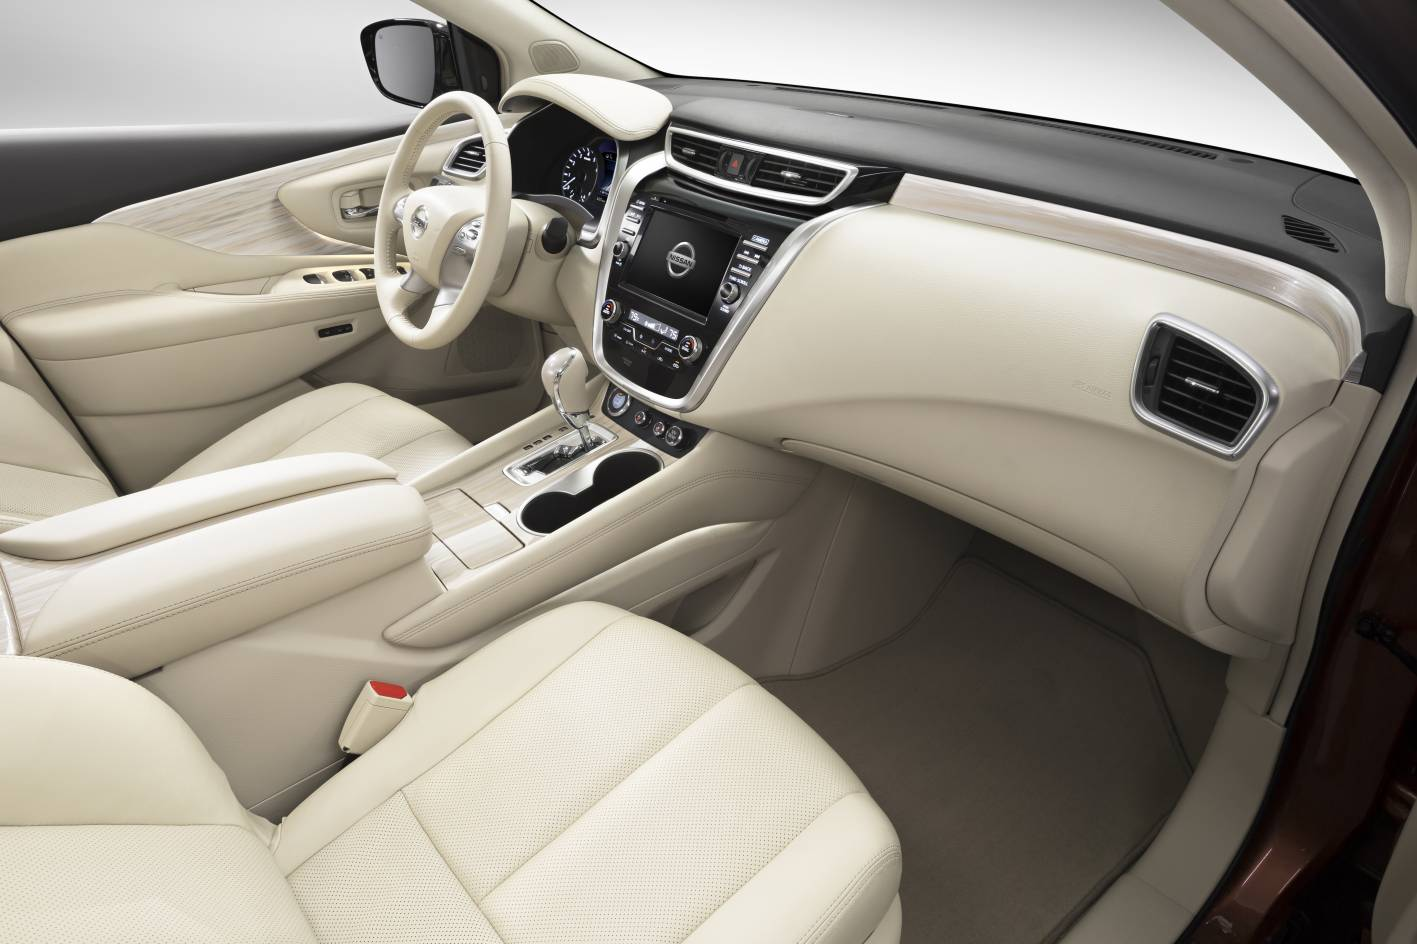 2015 nissan murano revealed arrives later next year - Nissan murano 2017 interior colors ...